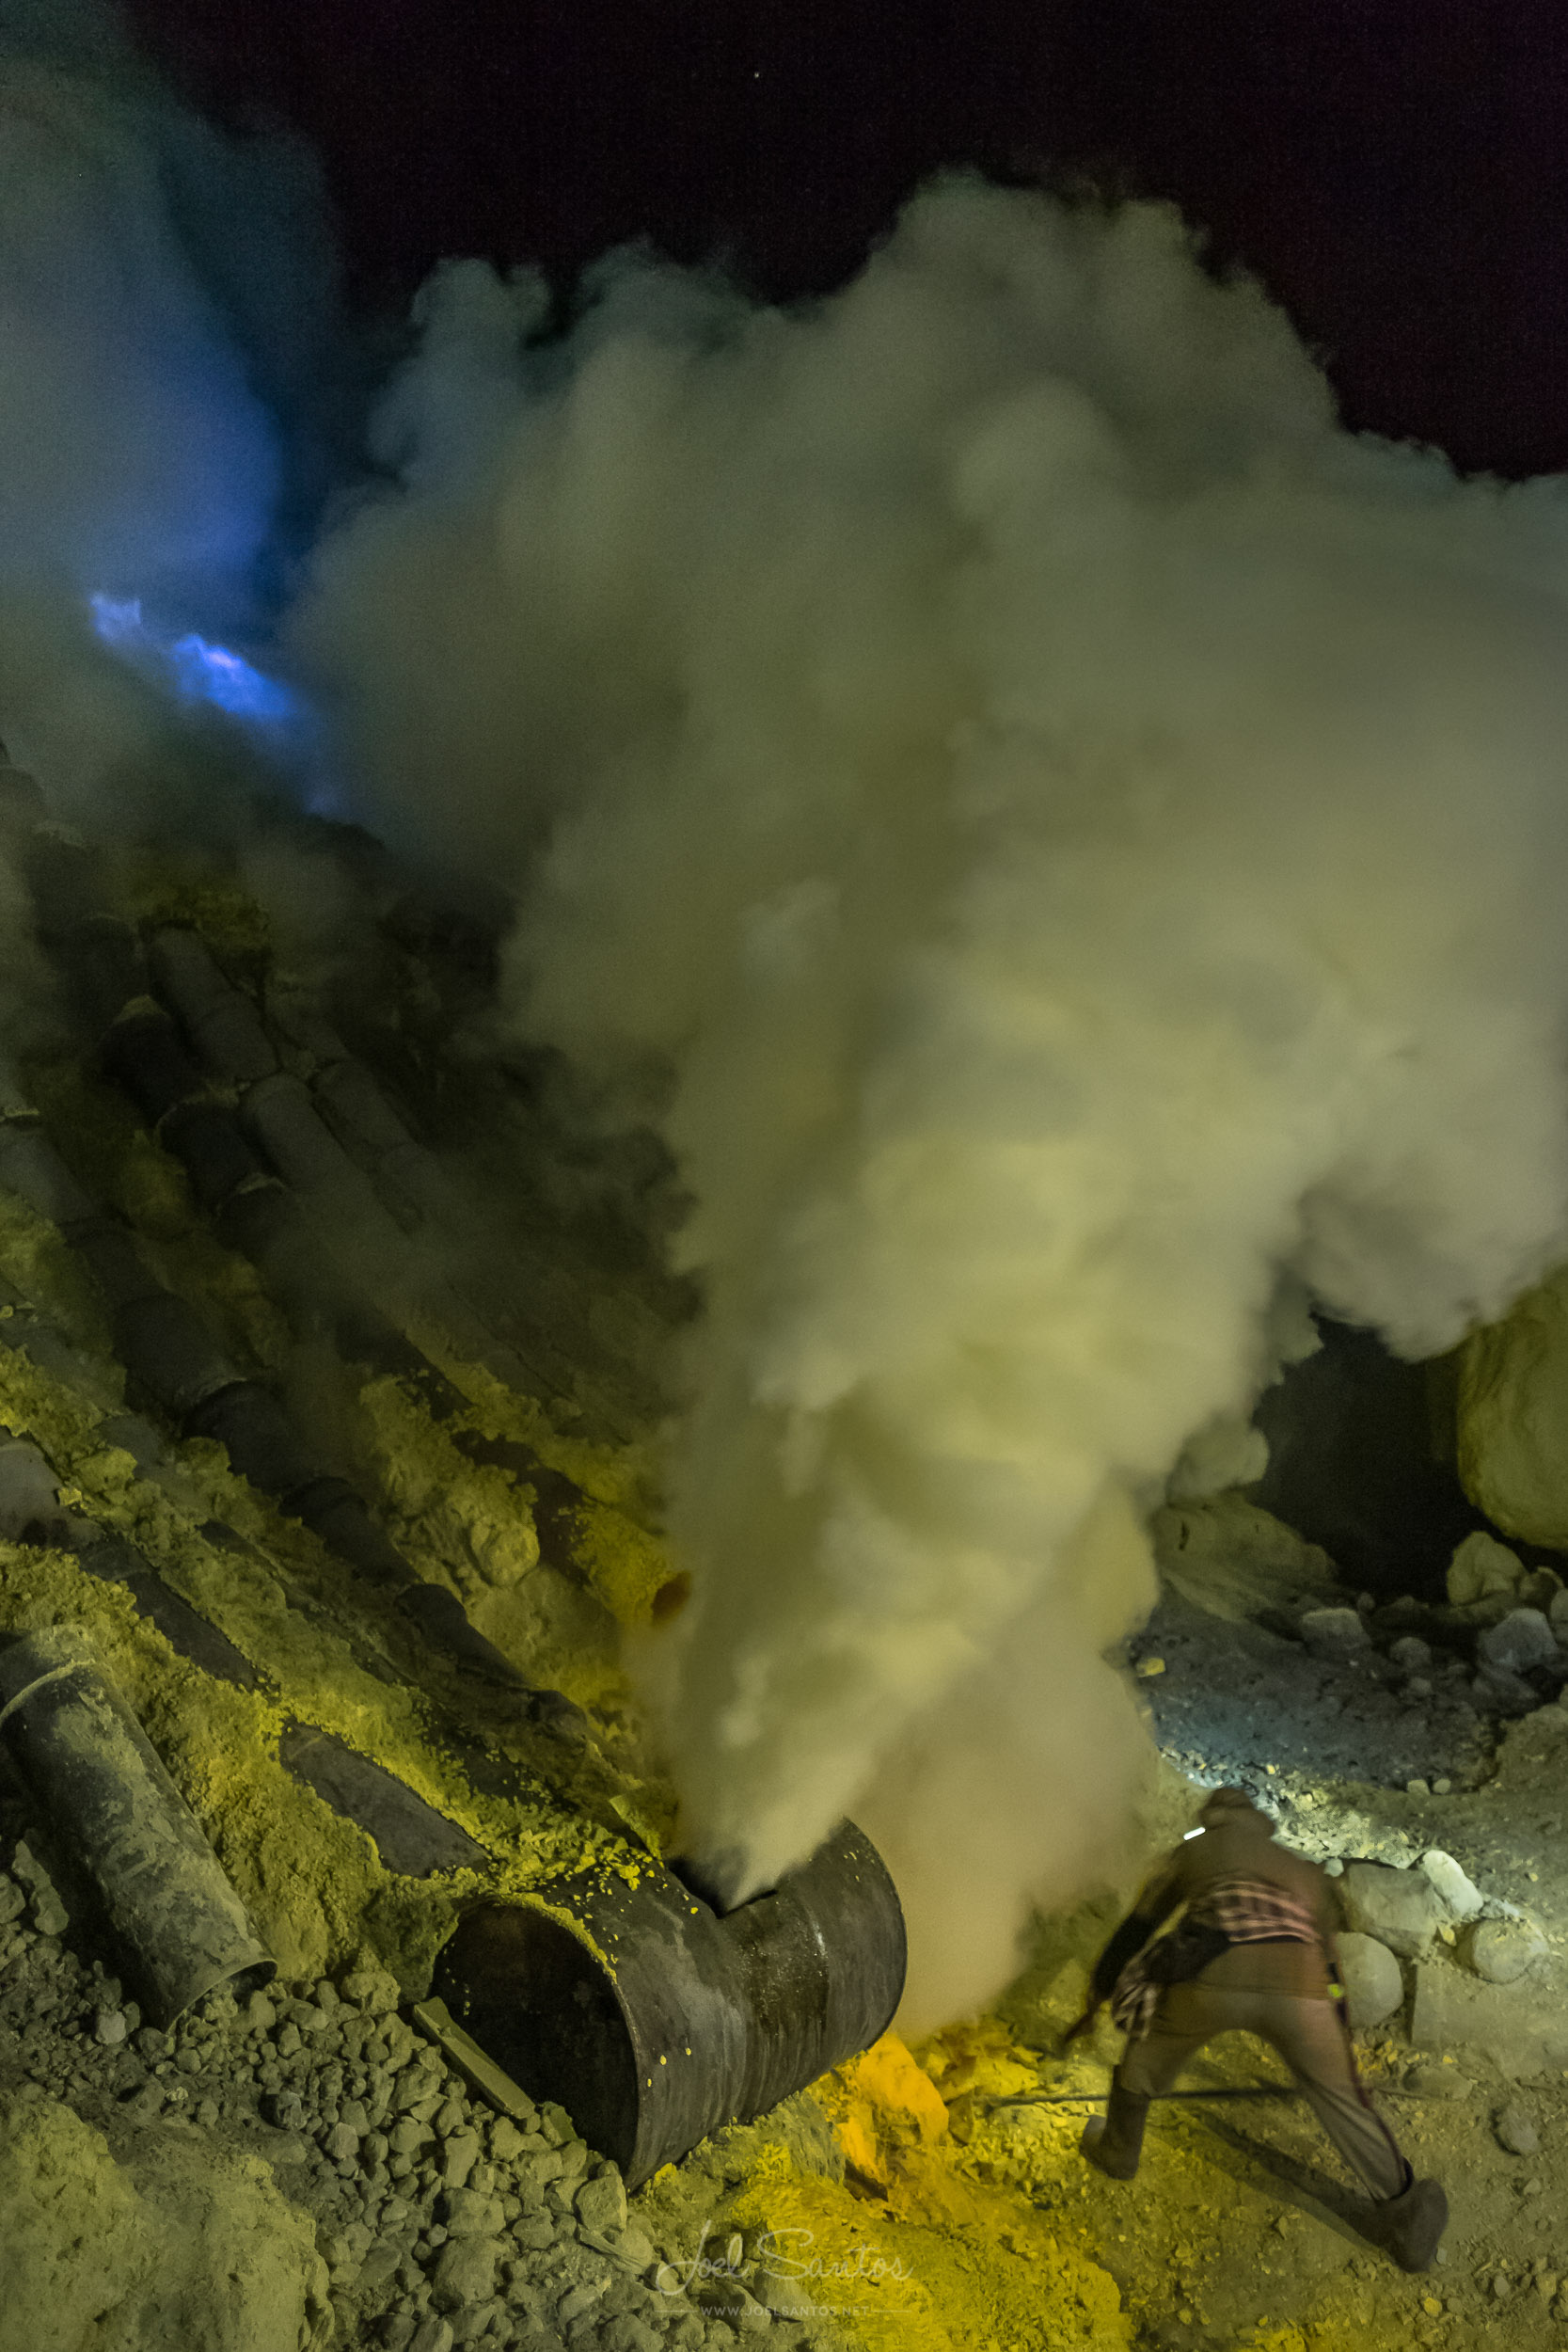 Miner working and breaking sulphur blocks, surrounded by fumes a